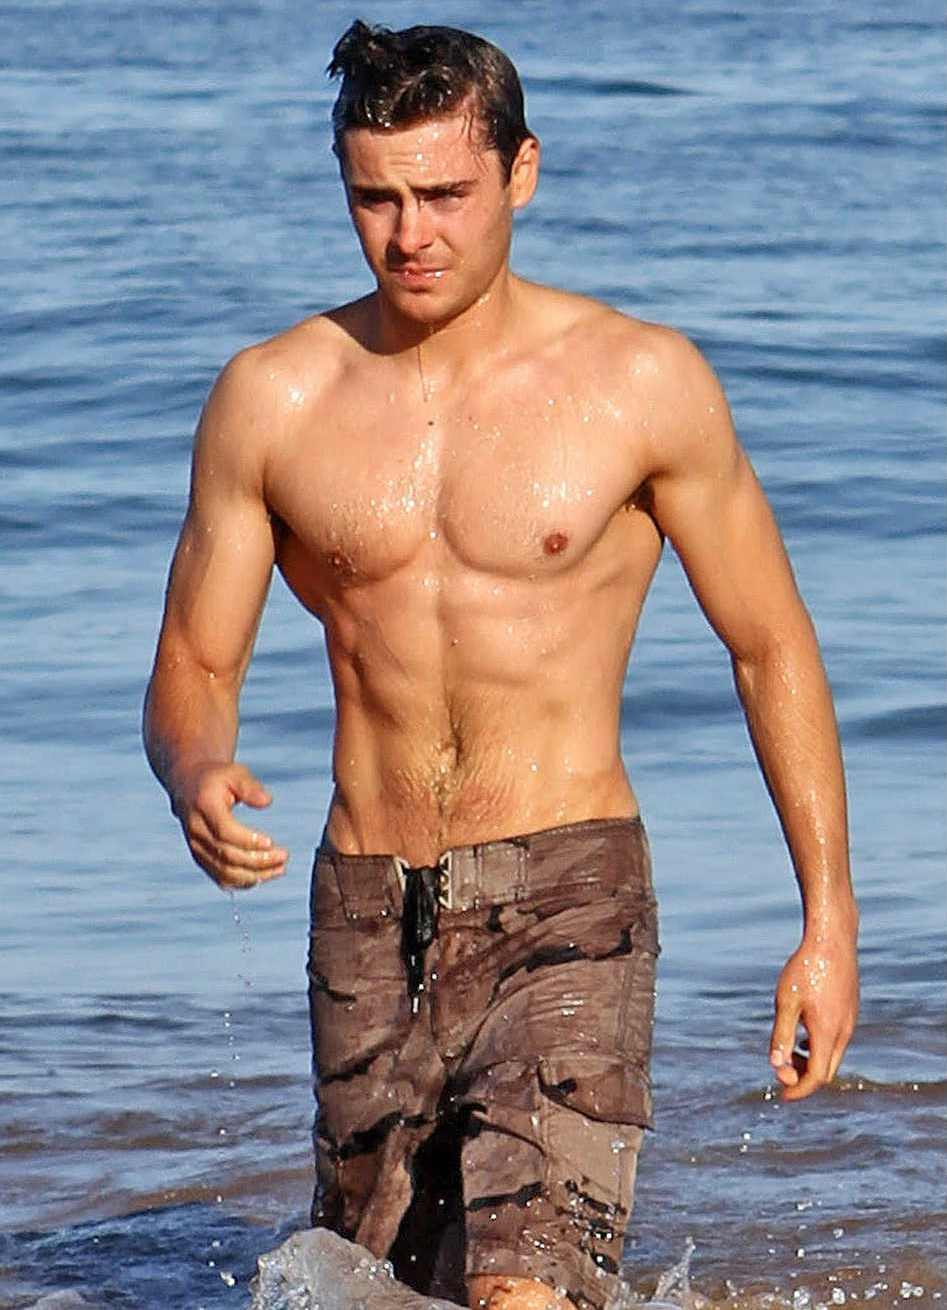 Zac efron topless, kareena kapoor xxx fucking photo